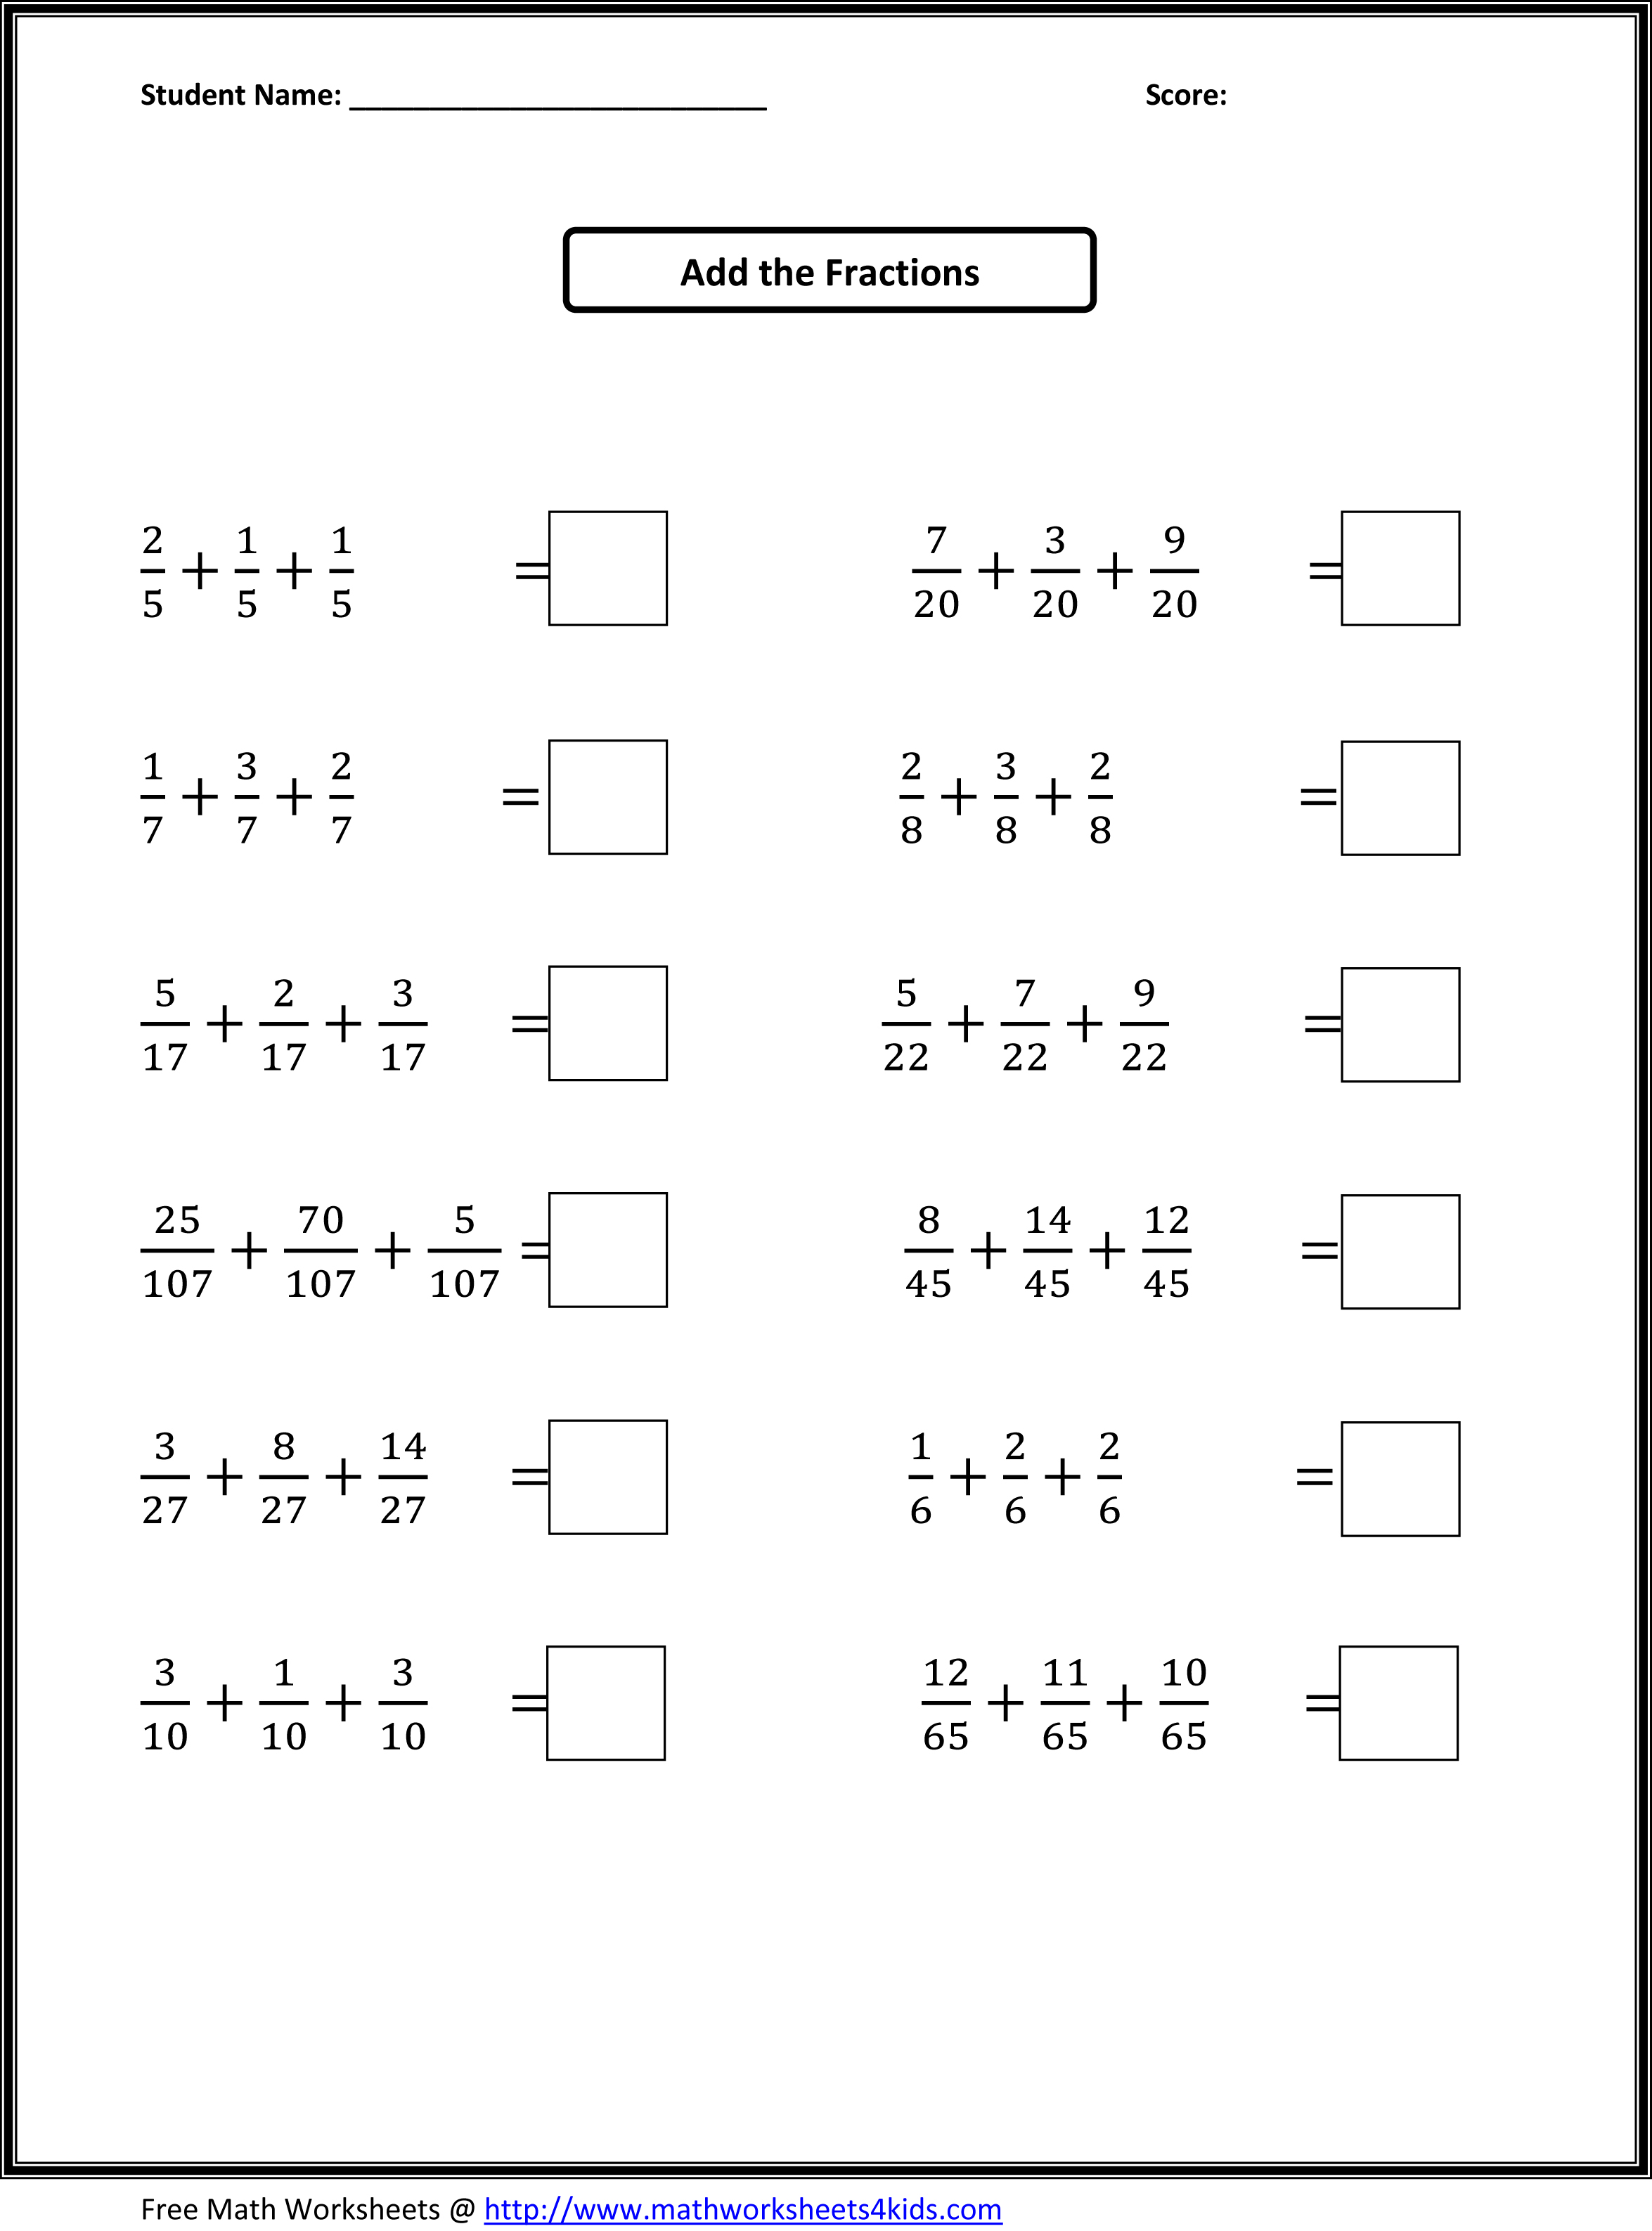 13 Best Images Of Improper Fraction Worksheets 3rd Grade